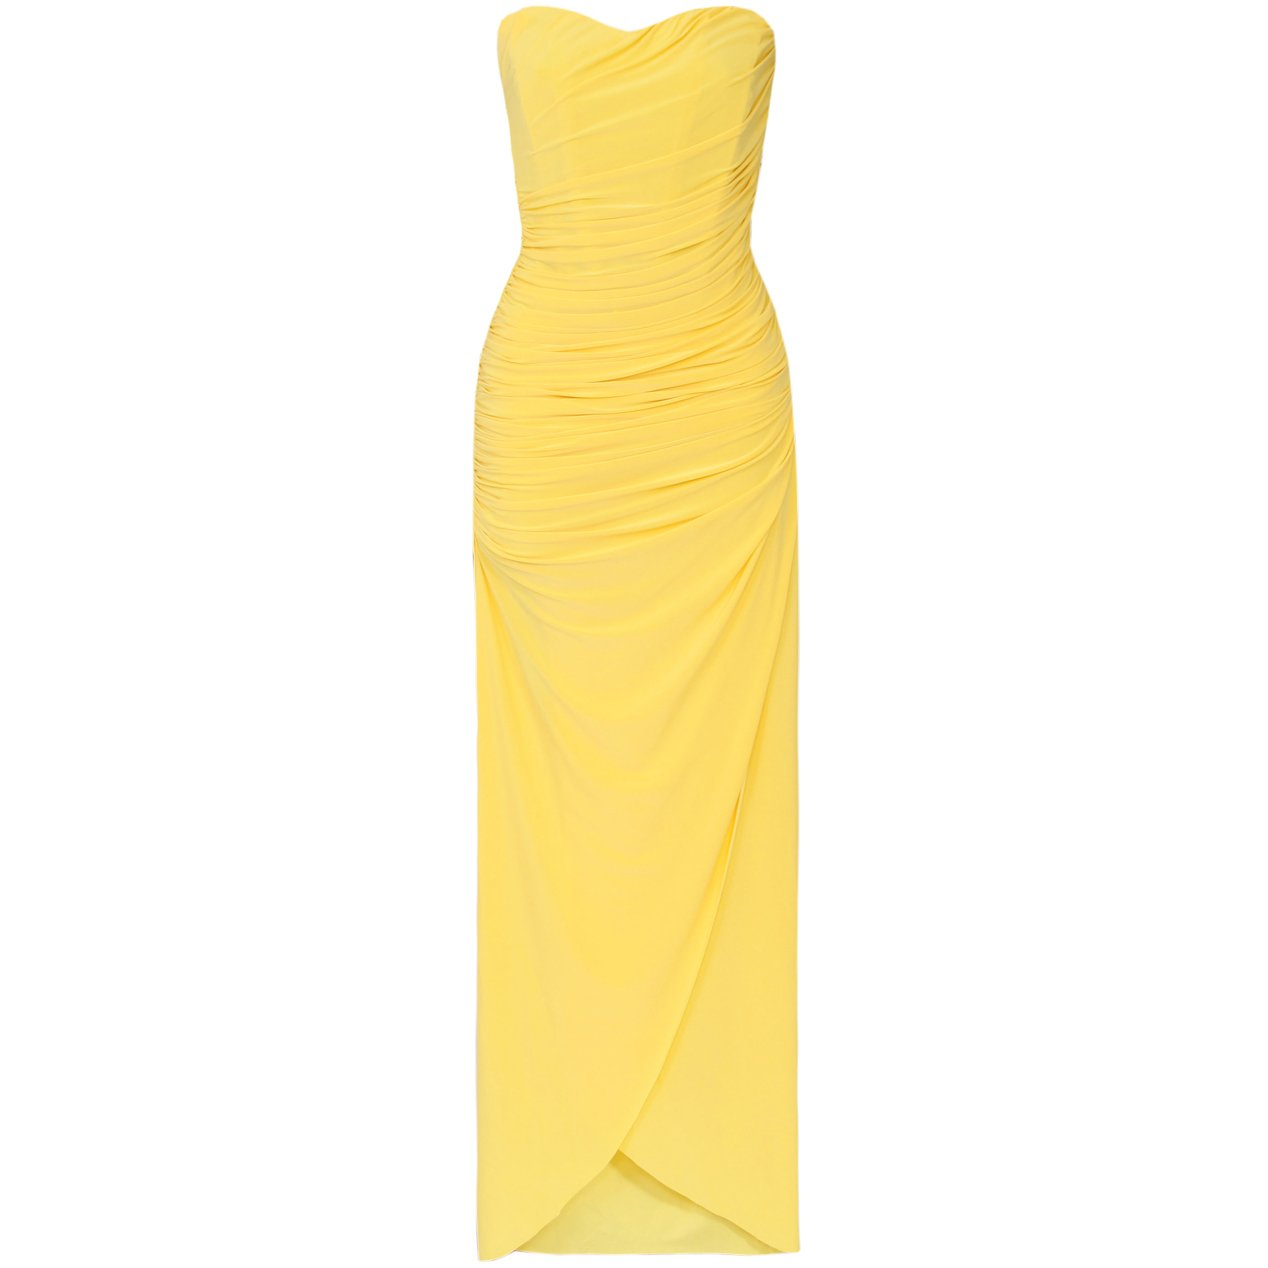 WOMENS LADIES YELLOW STRAPLESS LONG SUMMER EVENING CORSET PARTY PROM GOWN MAXI DRESS UK 14, US 10